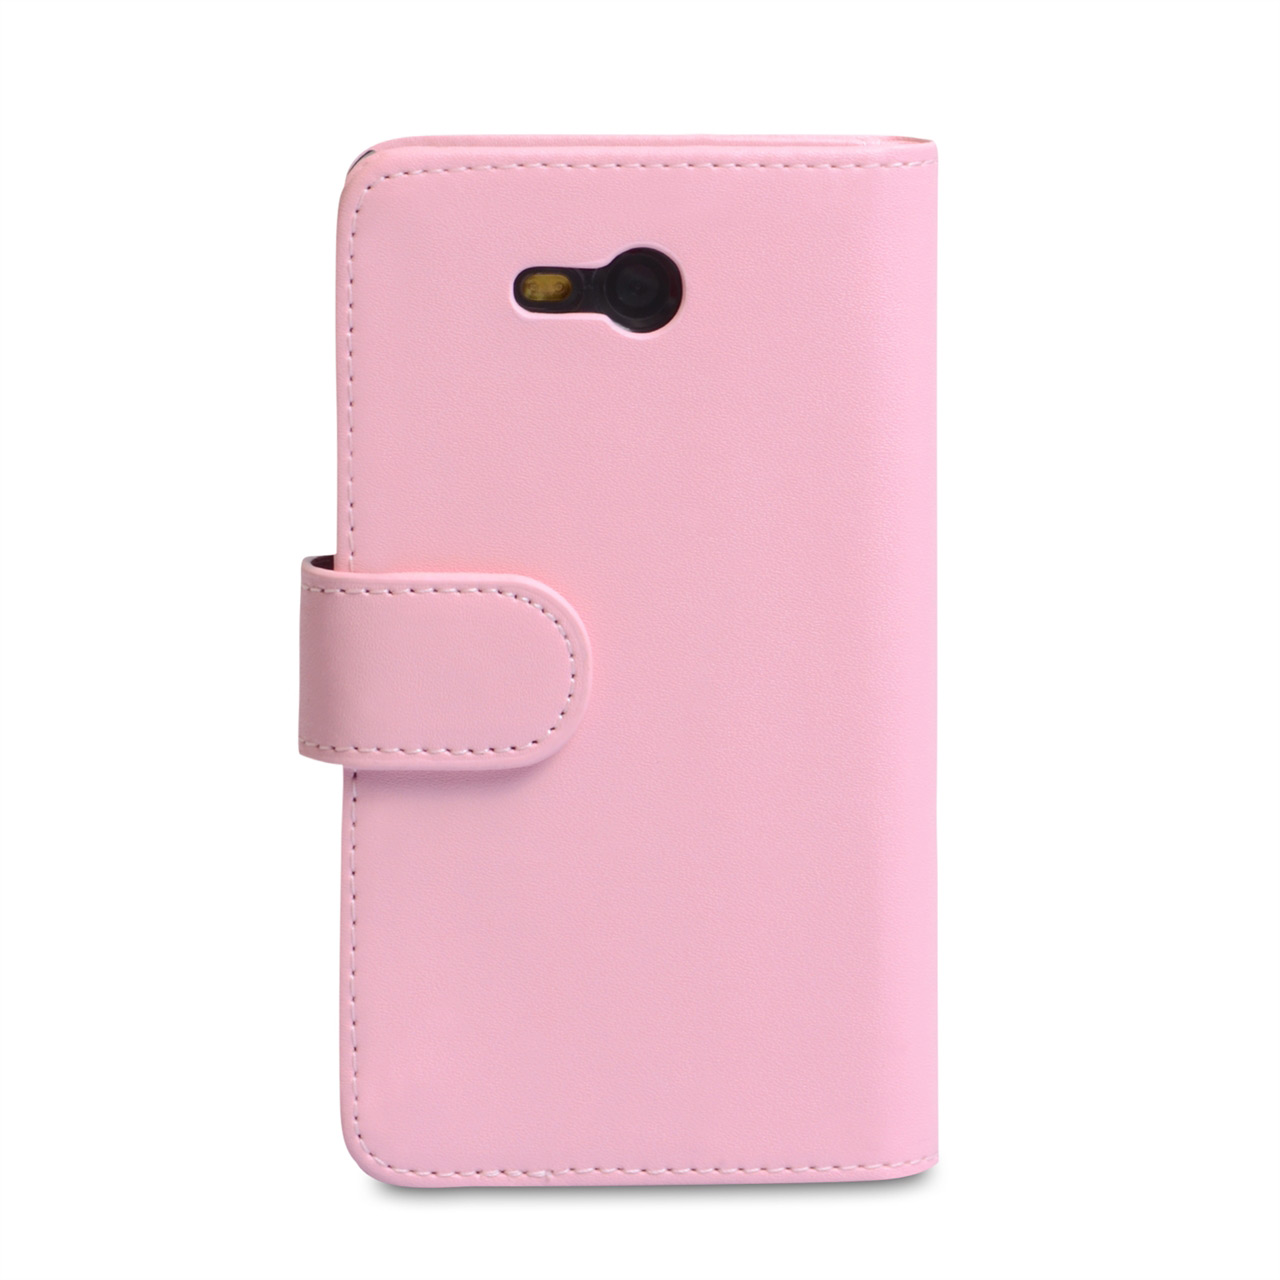 YouSave Nokia Lumia 820 Leather Effect Wallet Case - Baby Pink